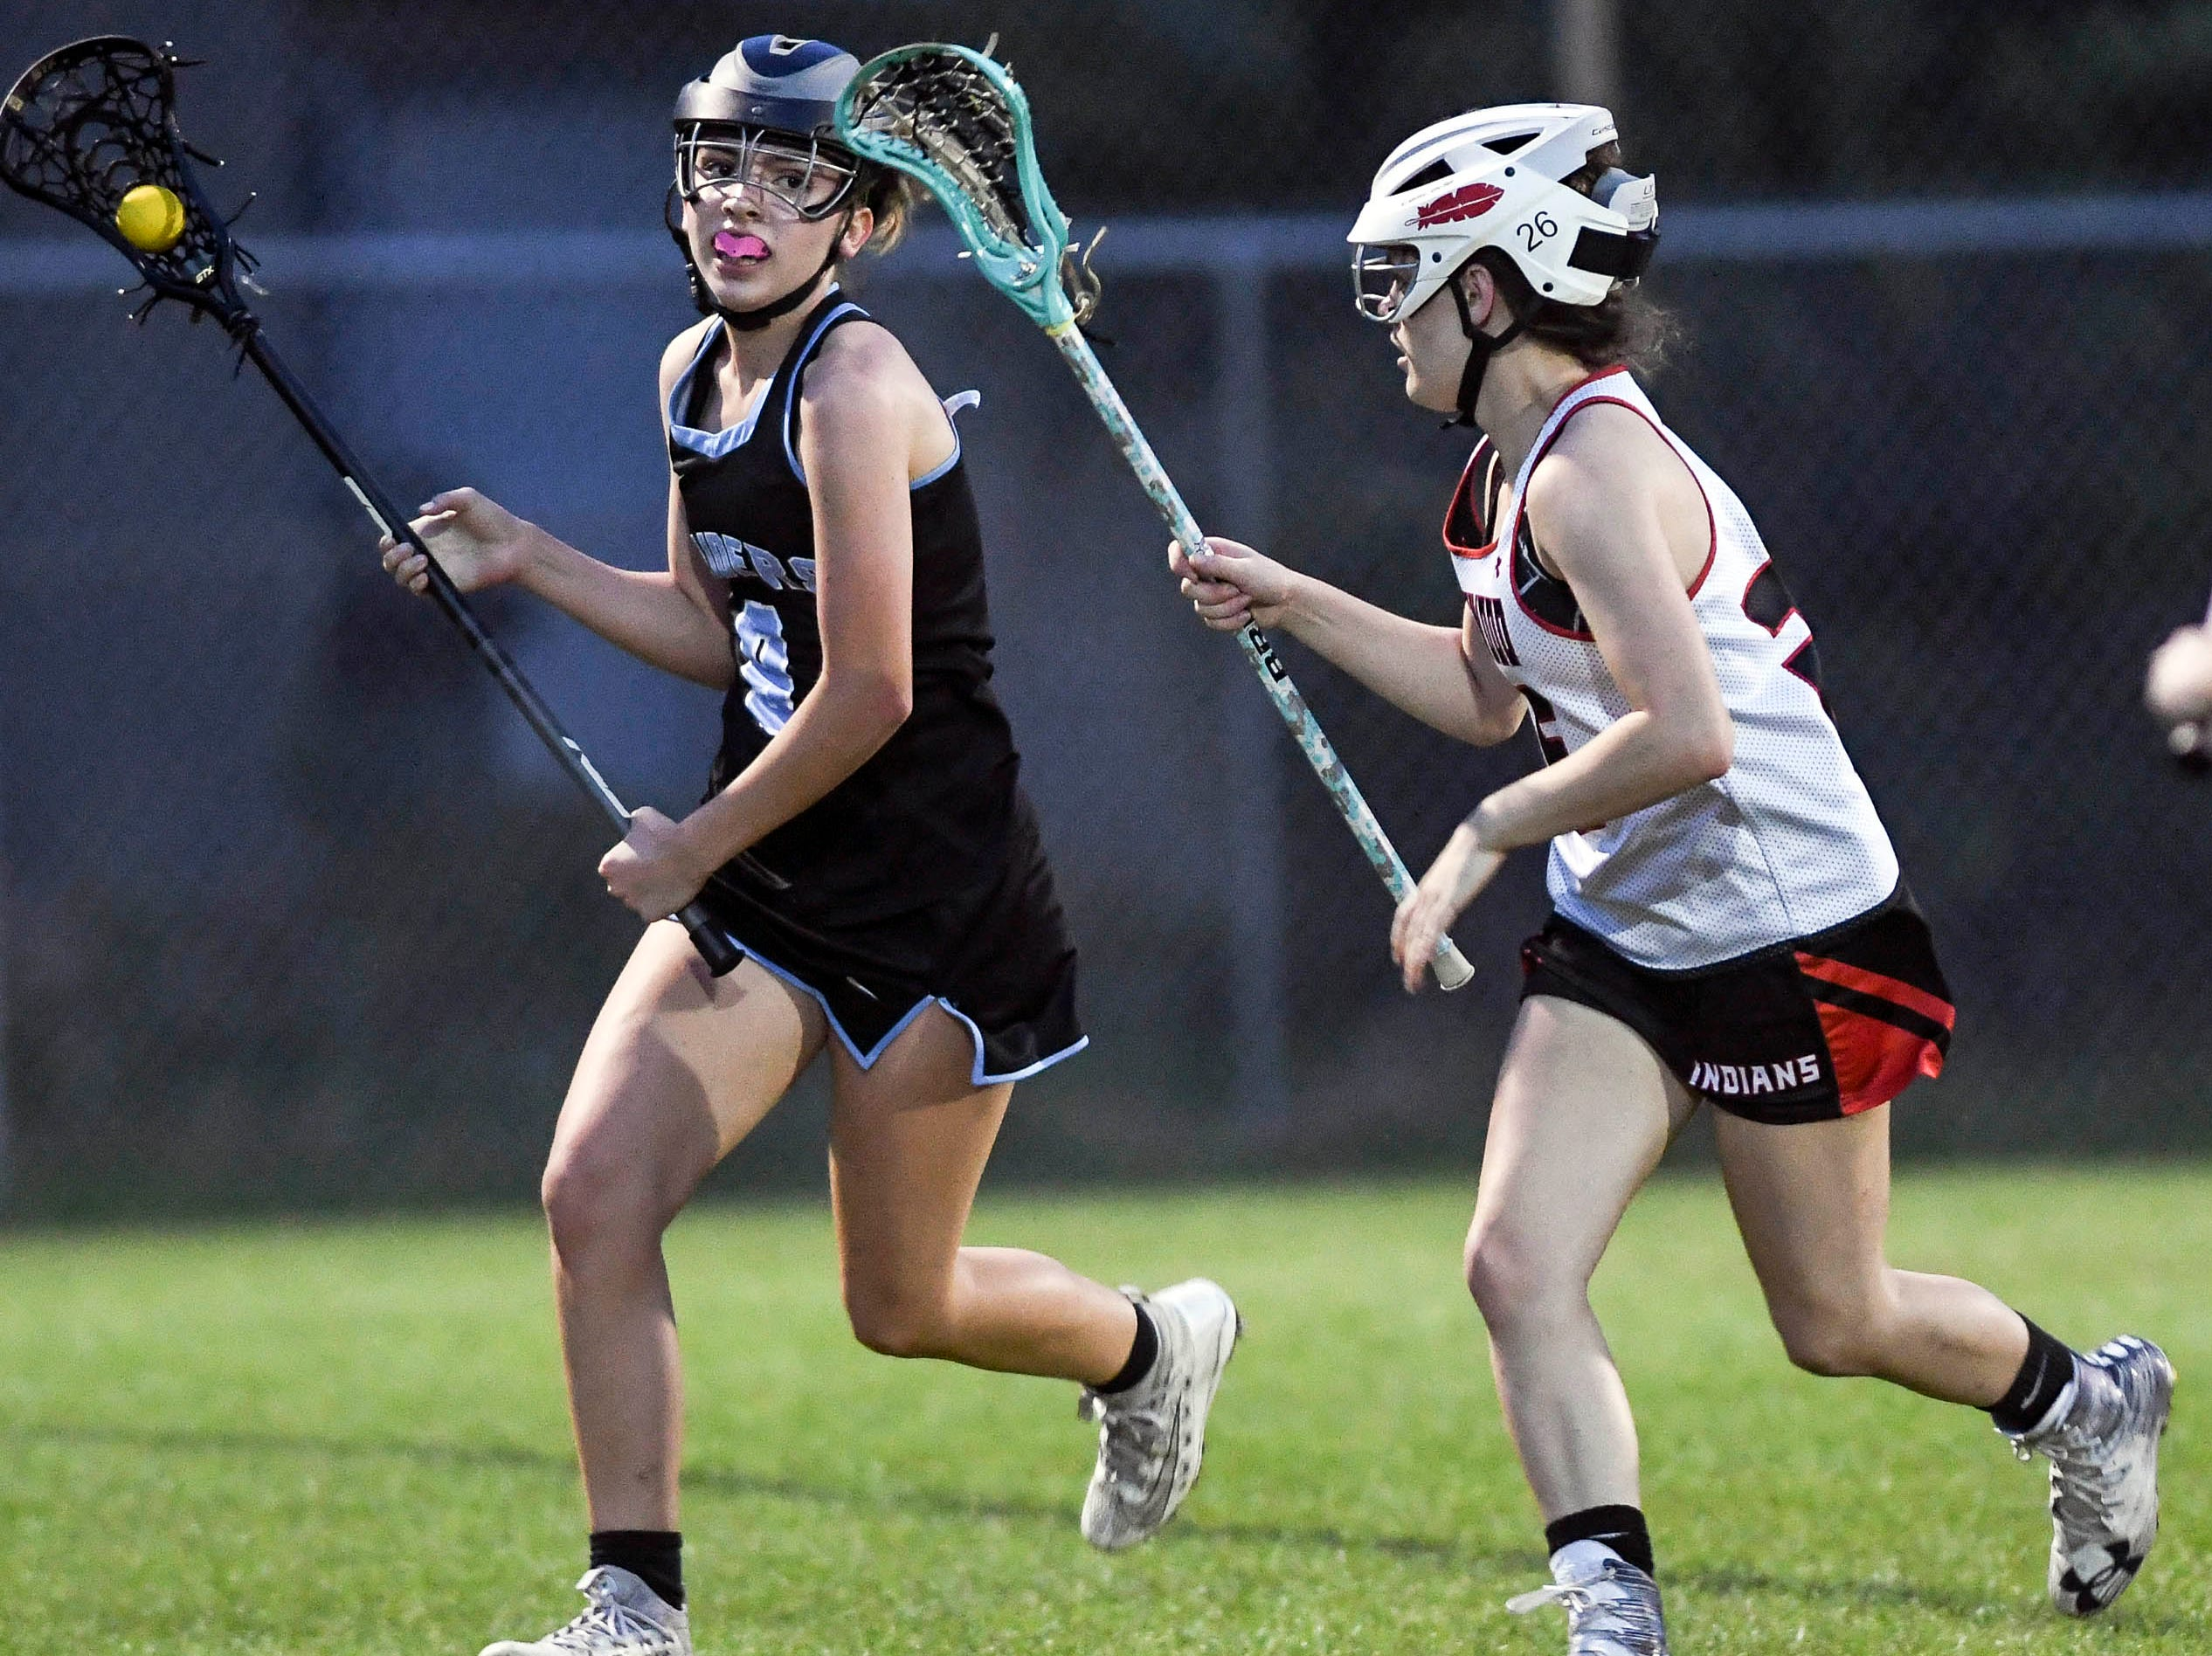 Rockledge's Sofia Baldwin is pursued by Jessica Ruiz of Edgewood during Tuesday's game.